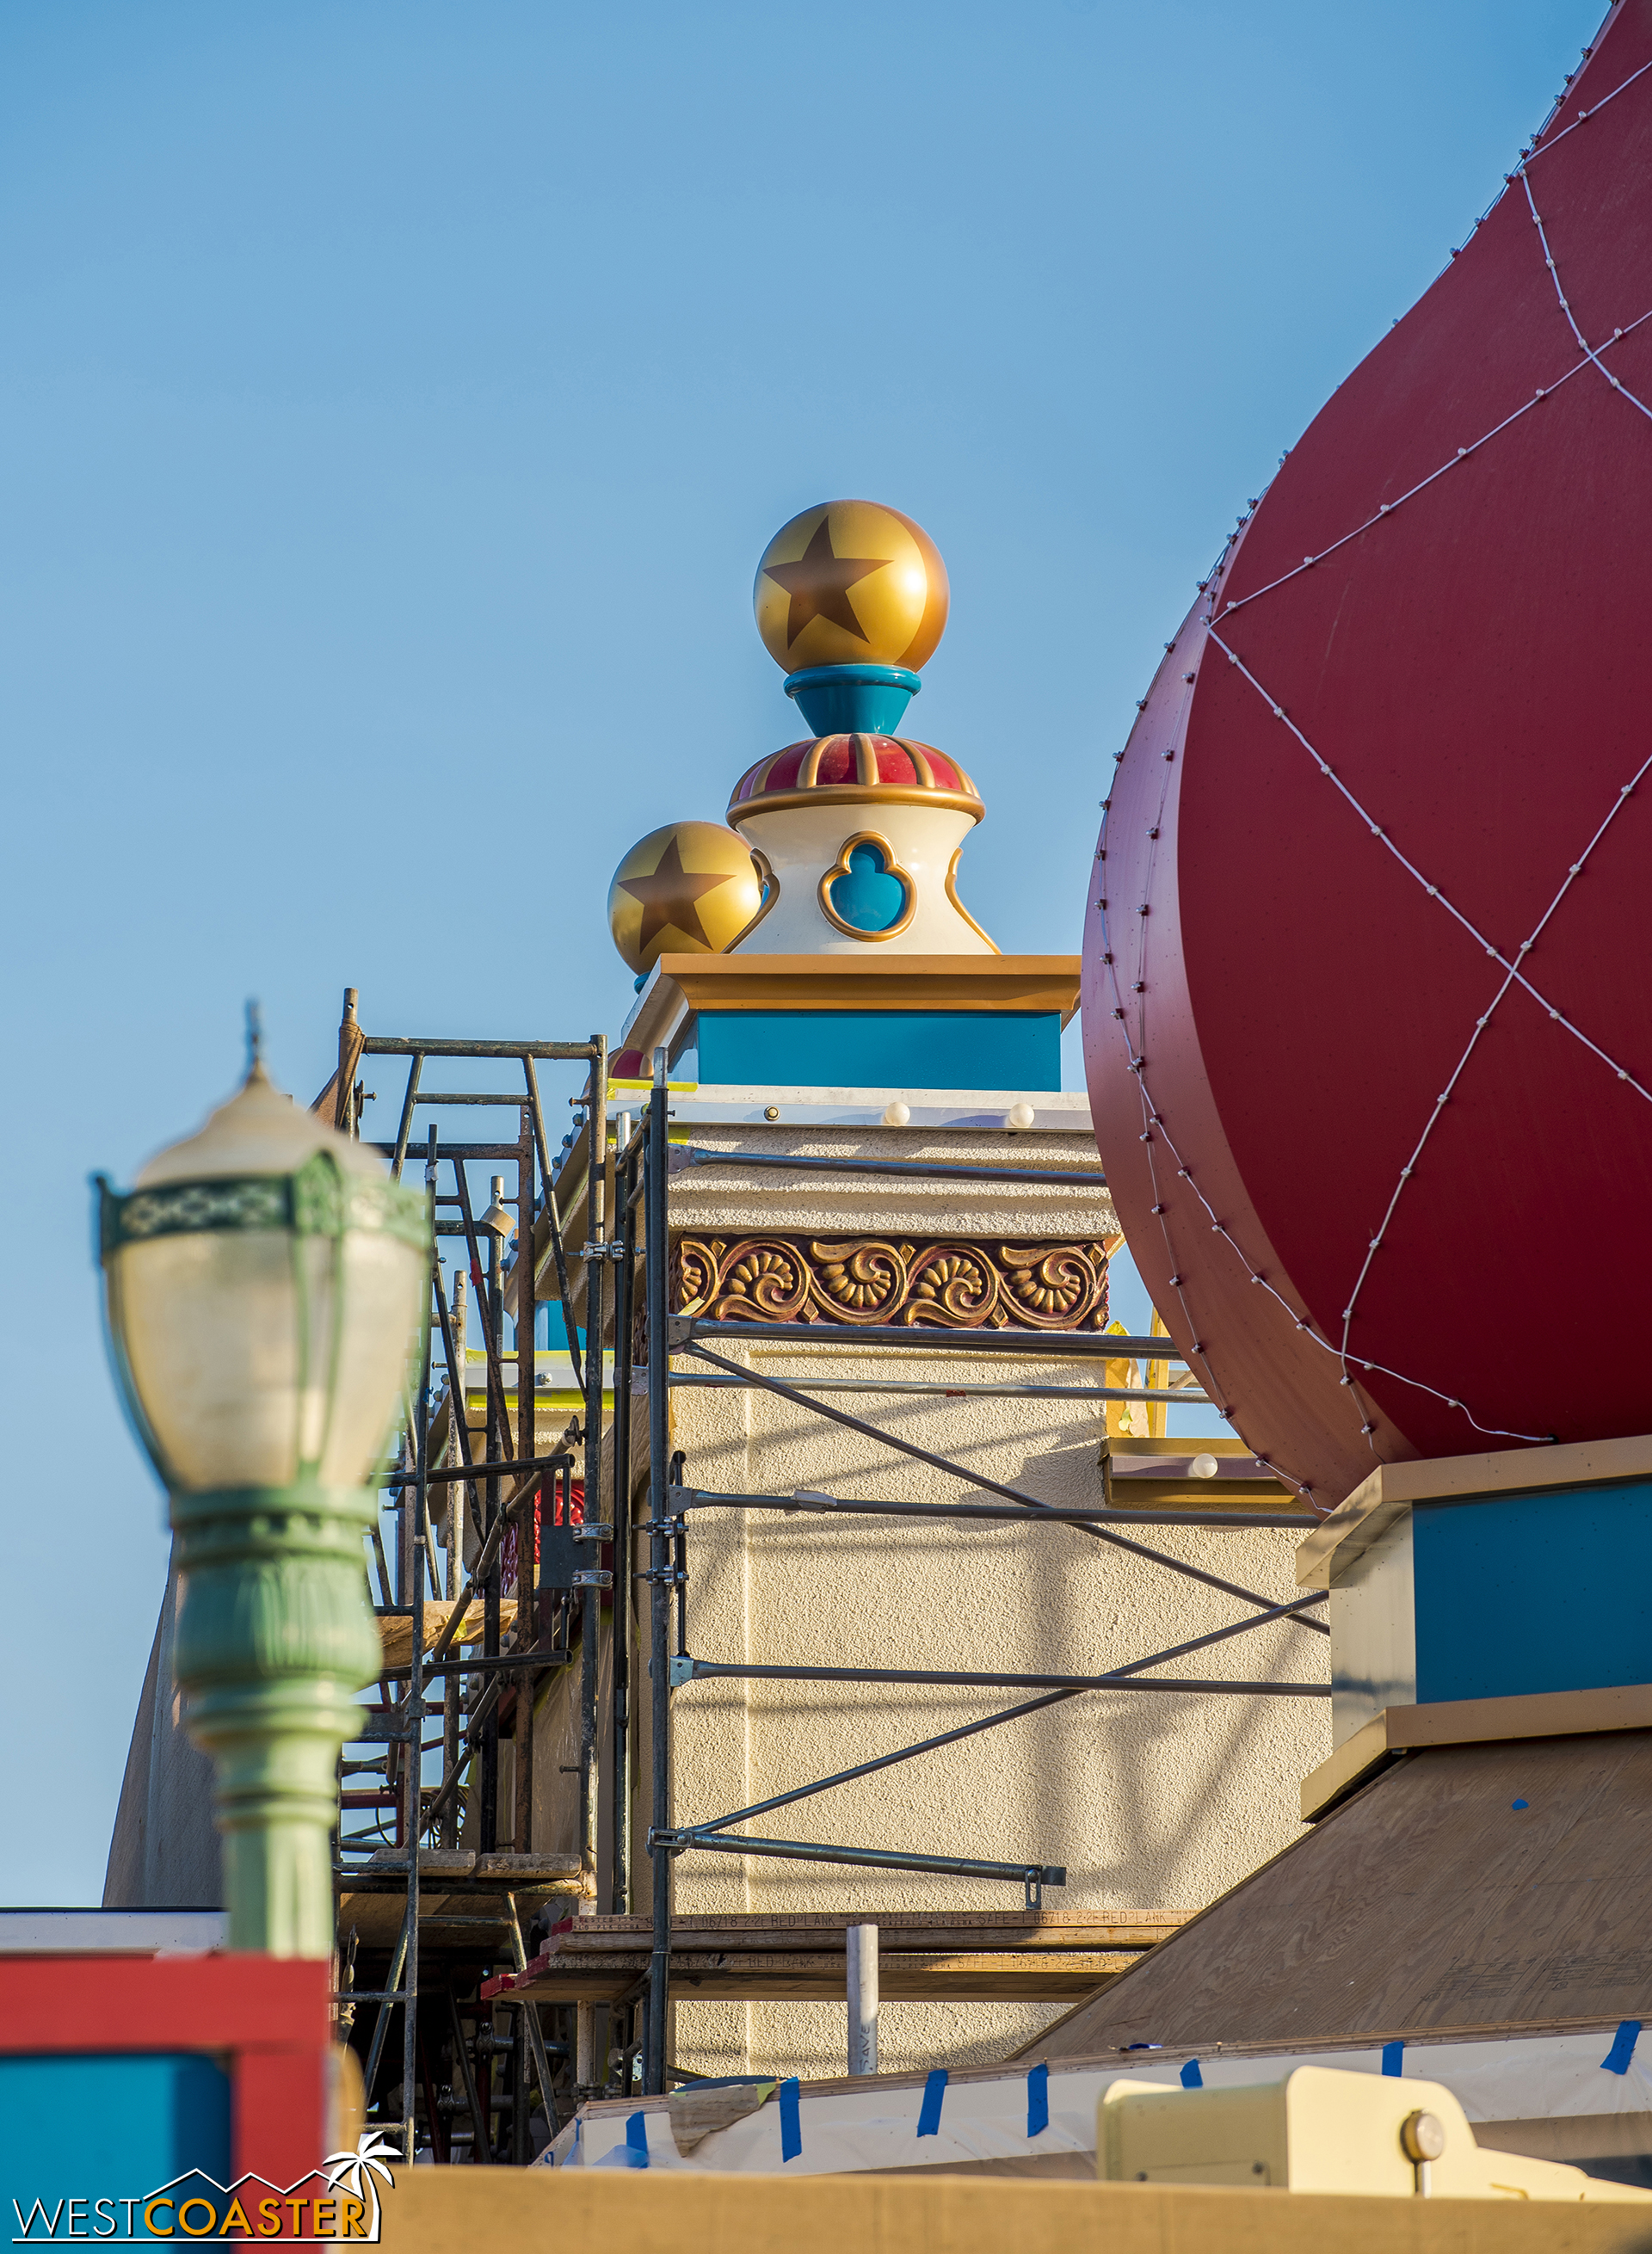 The details atop the building are cute.